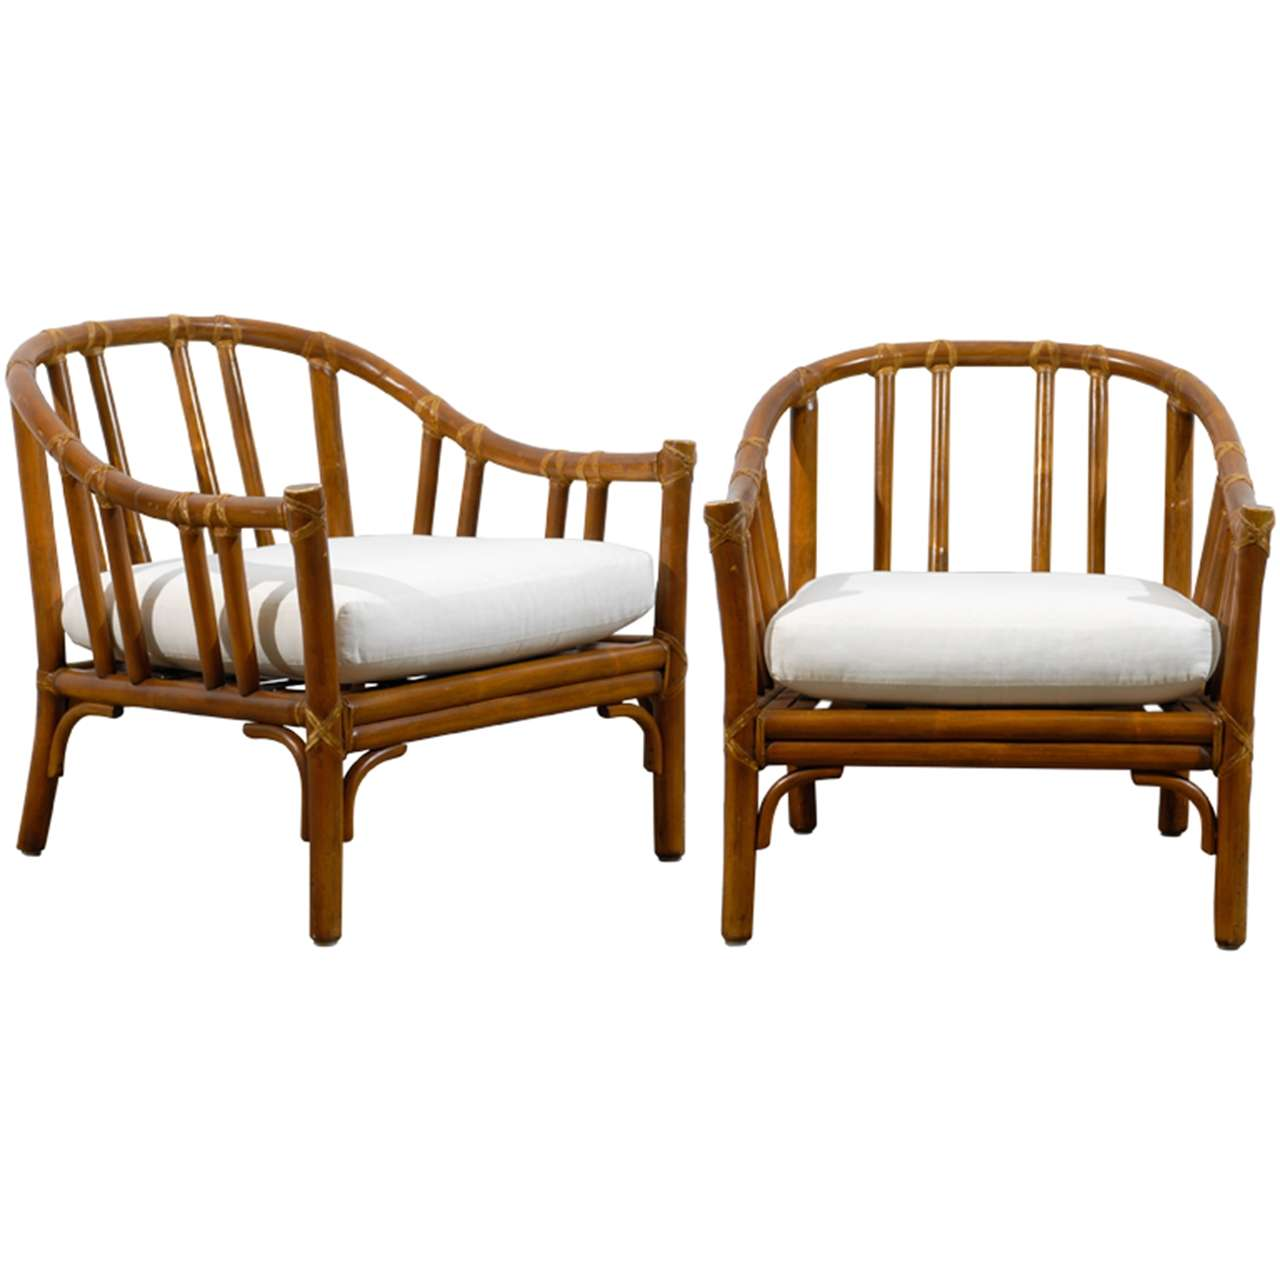 Handsome Pair of Bamboo Lounge/Club Chairs by McGuire at 1stdibs